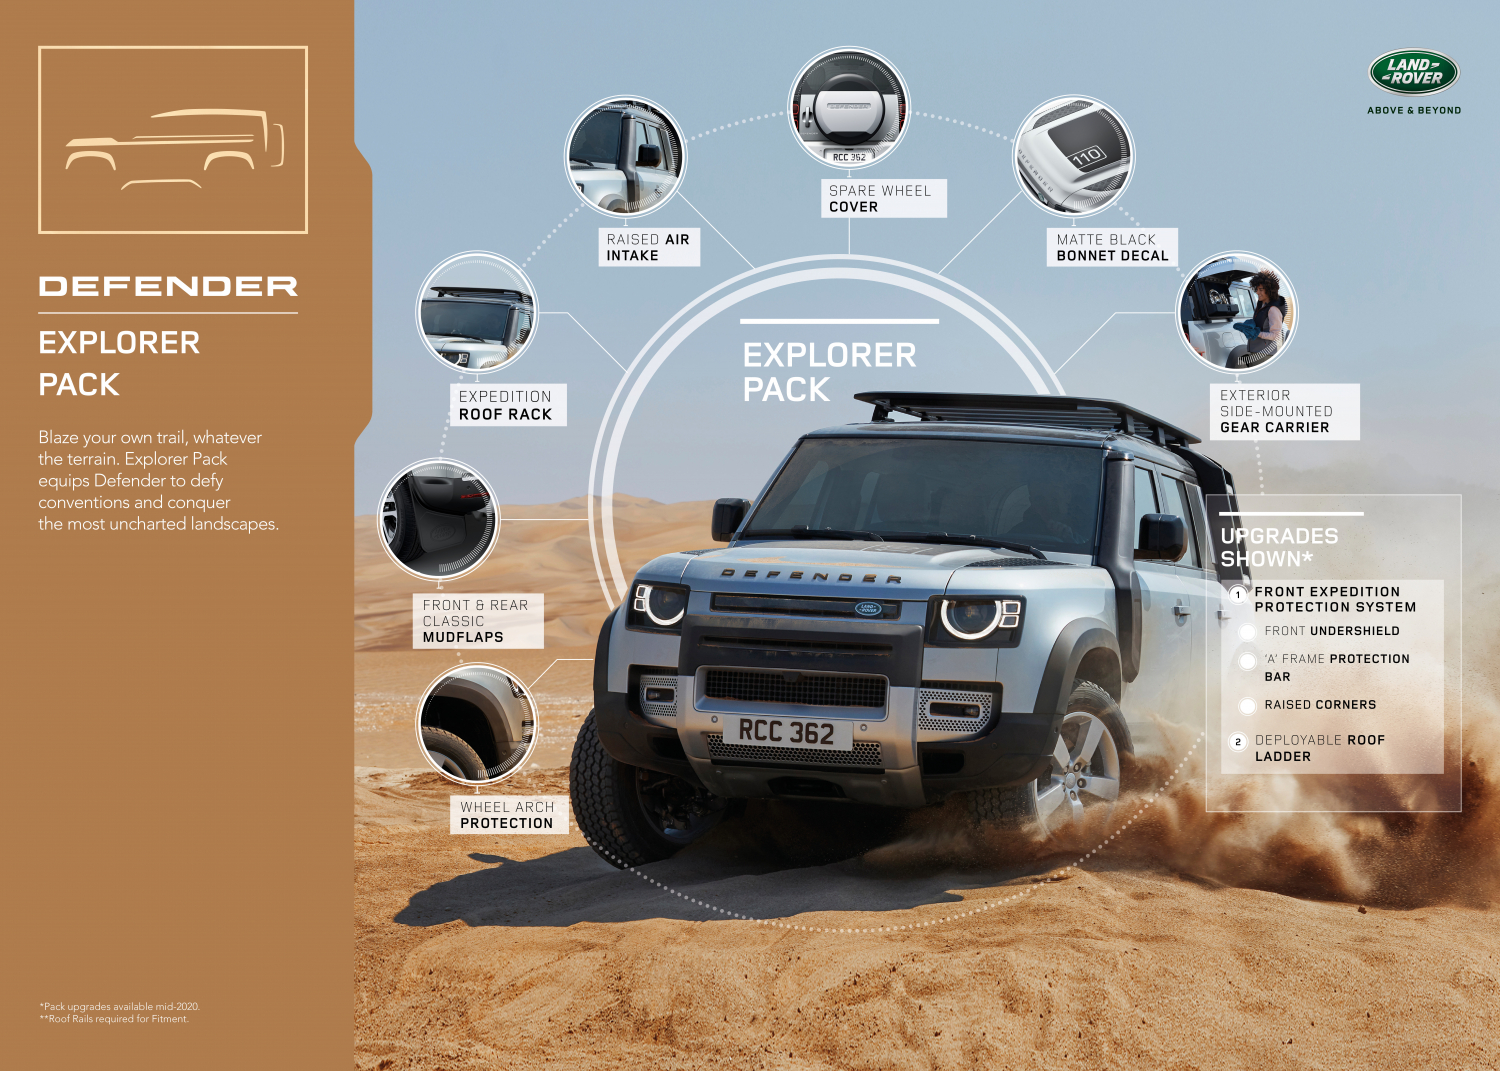 EXPLORER PACK – THE NEW DEFENDER